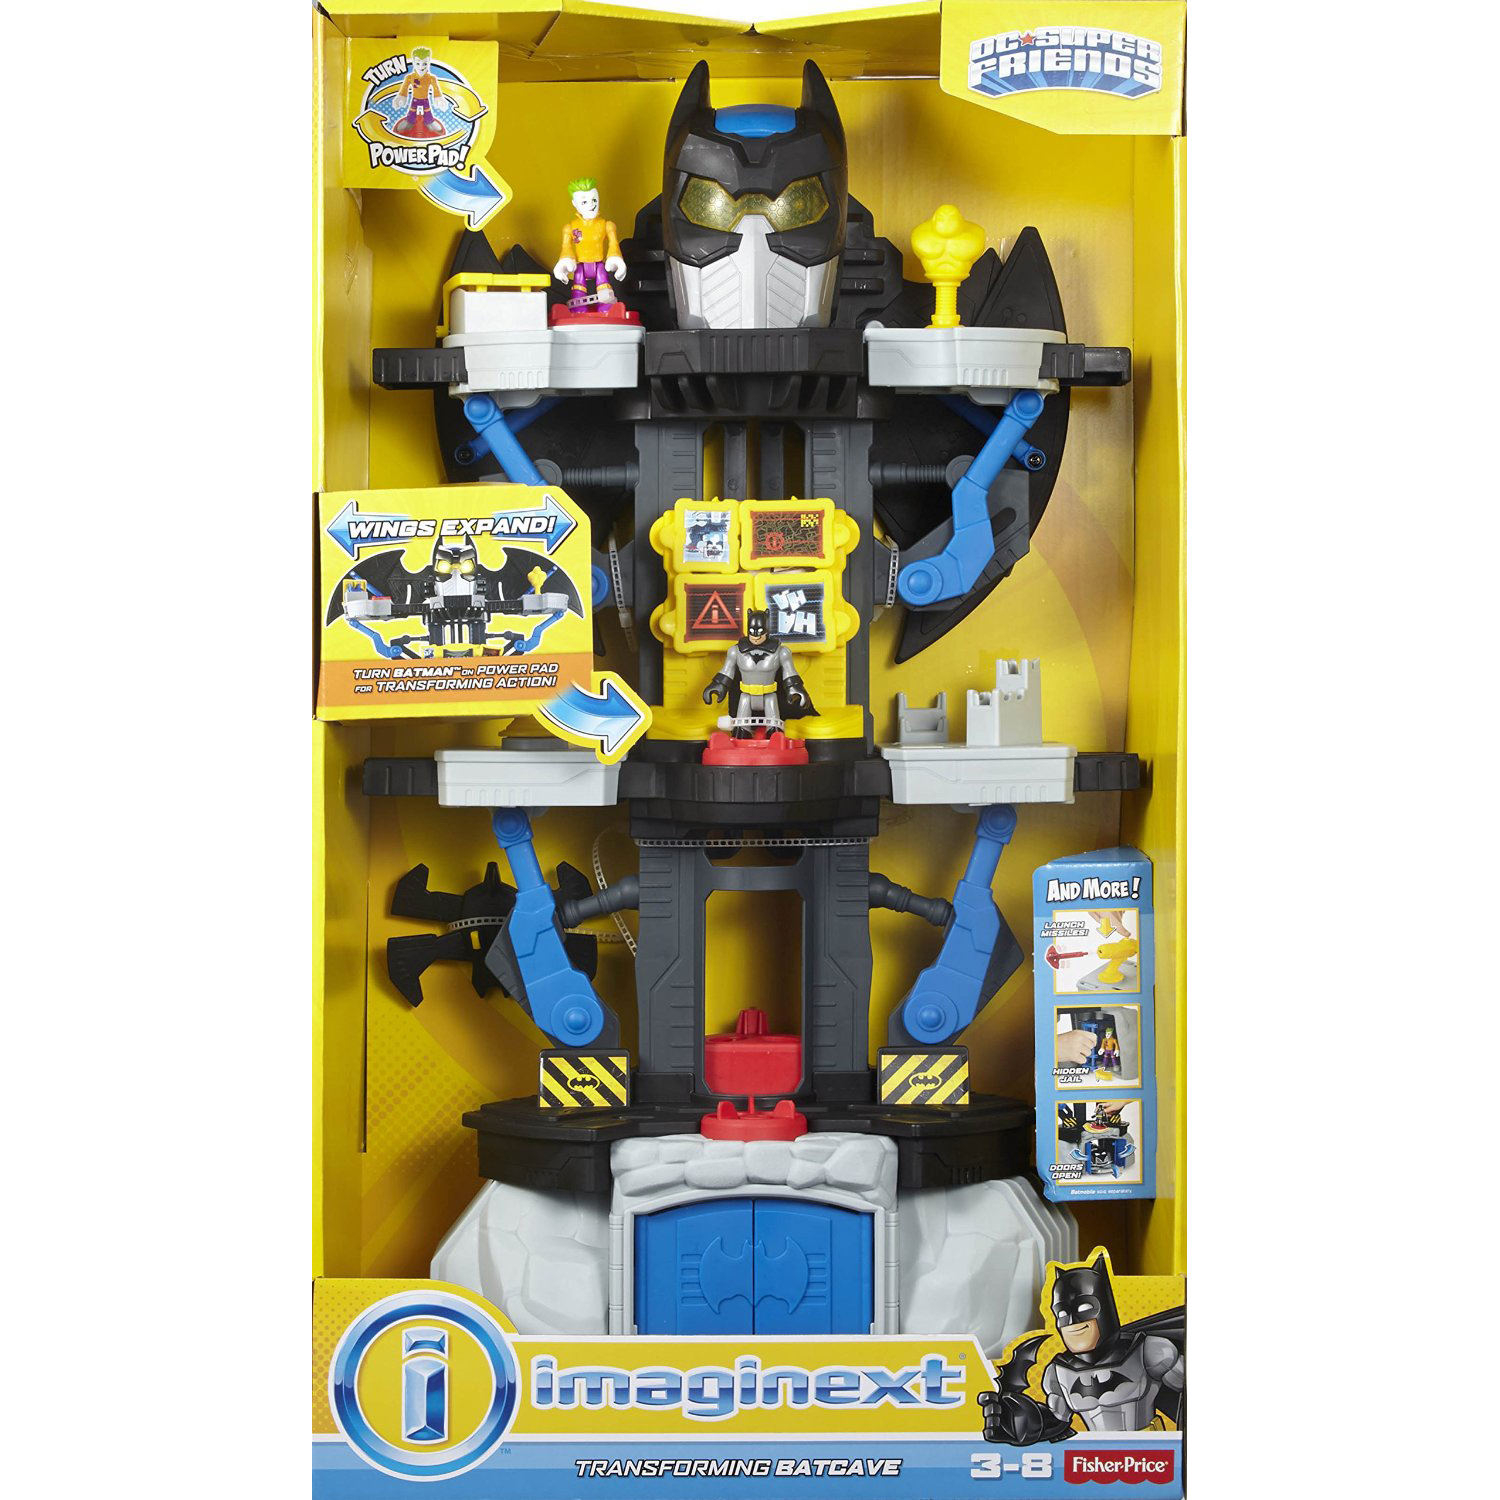 Fisher Price Imaginext DC Super Friends Transforming Batcave at Hobby Warehouse